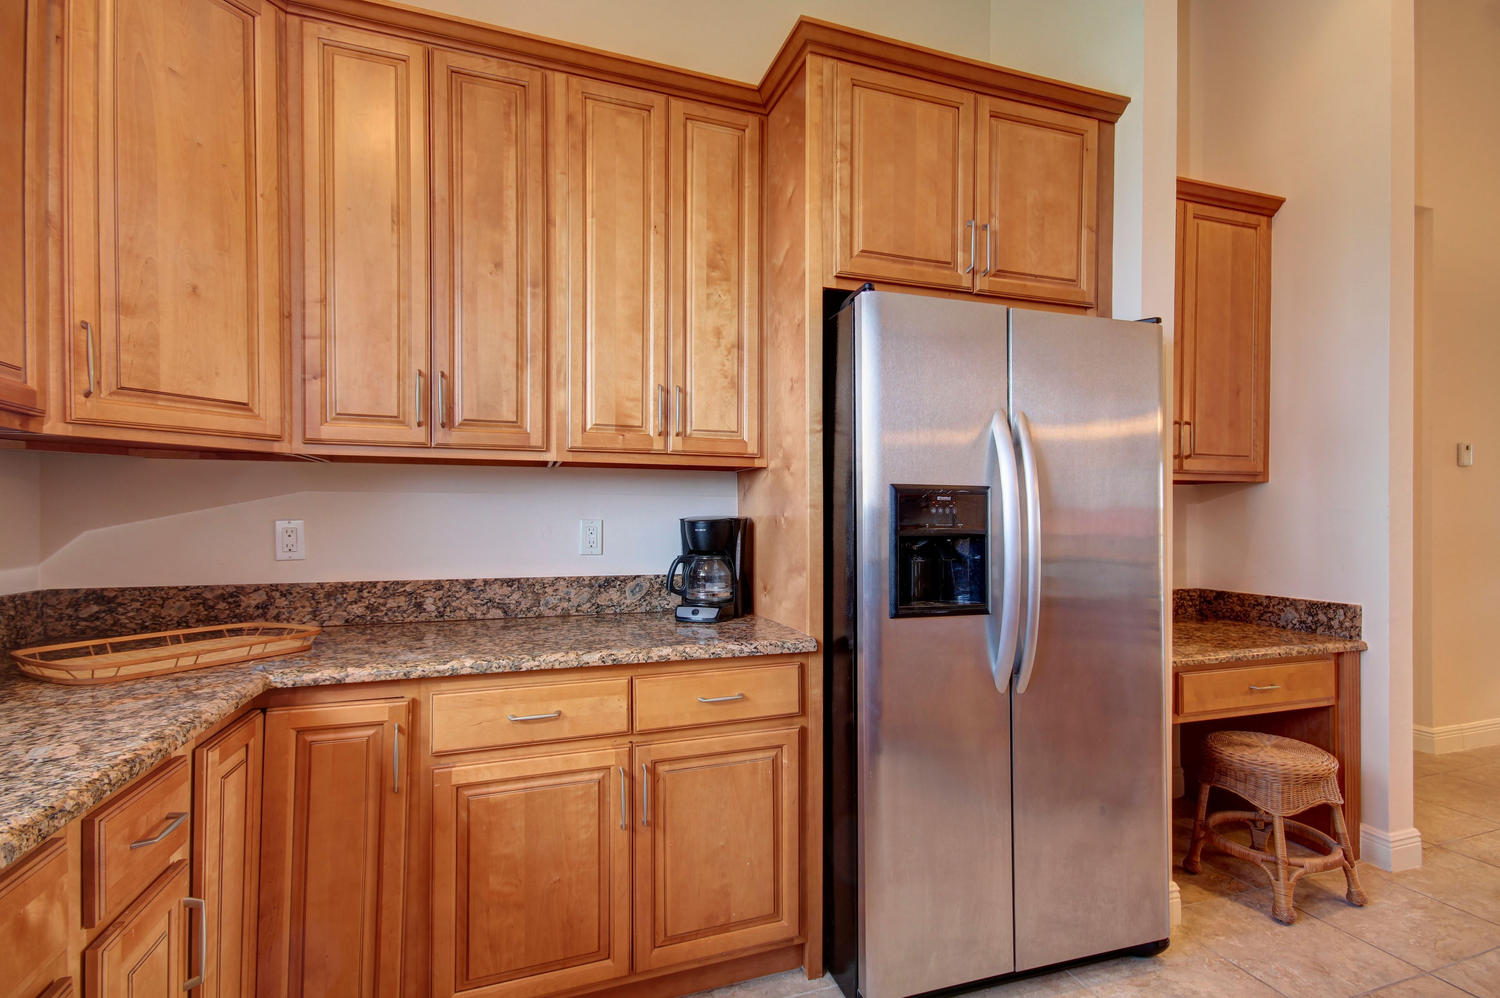 Kitchen - all stainless steel appliances